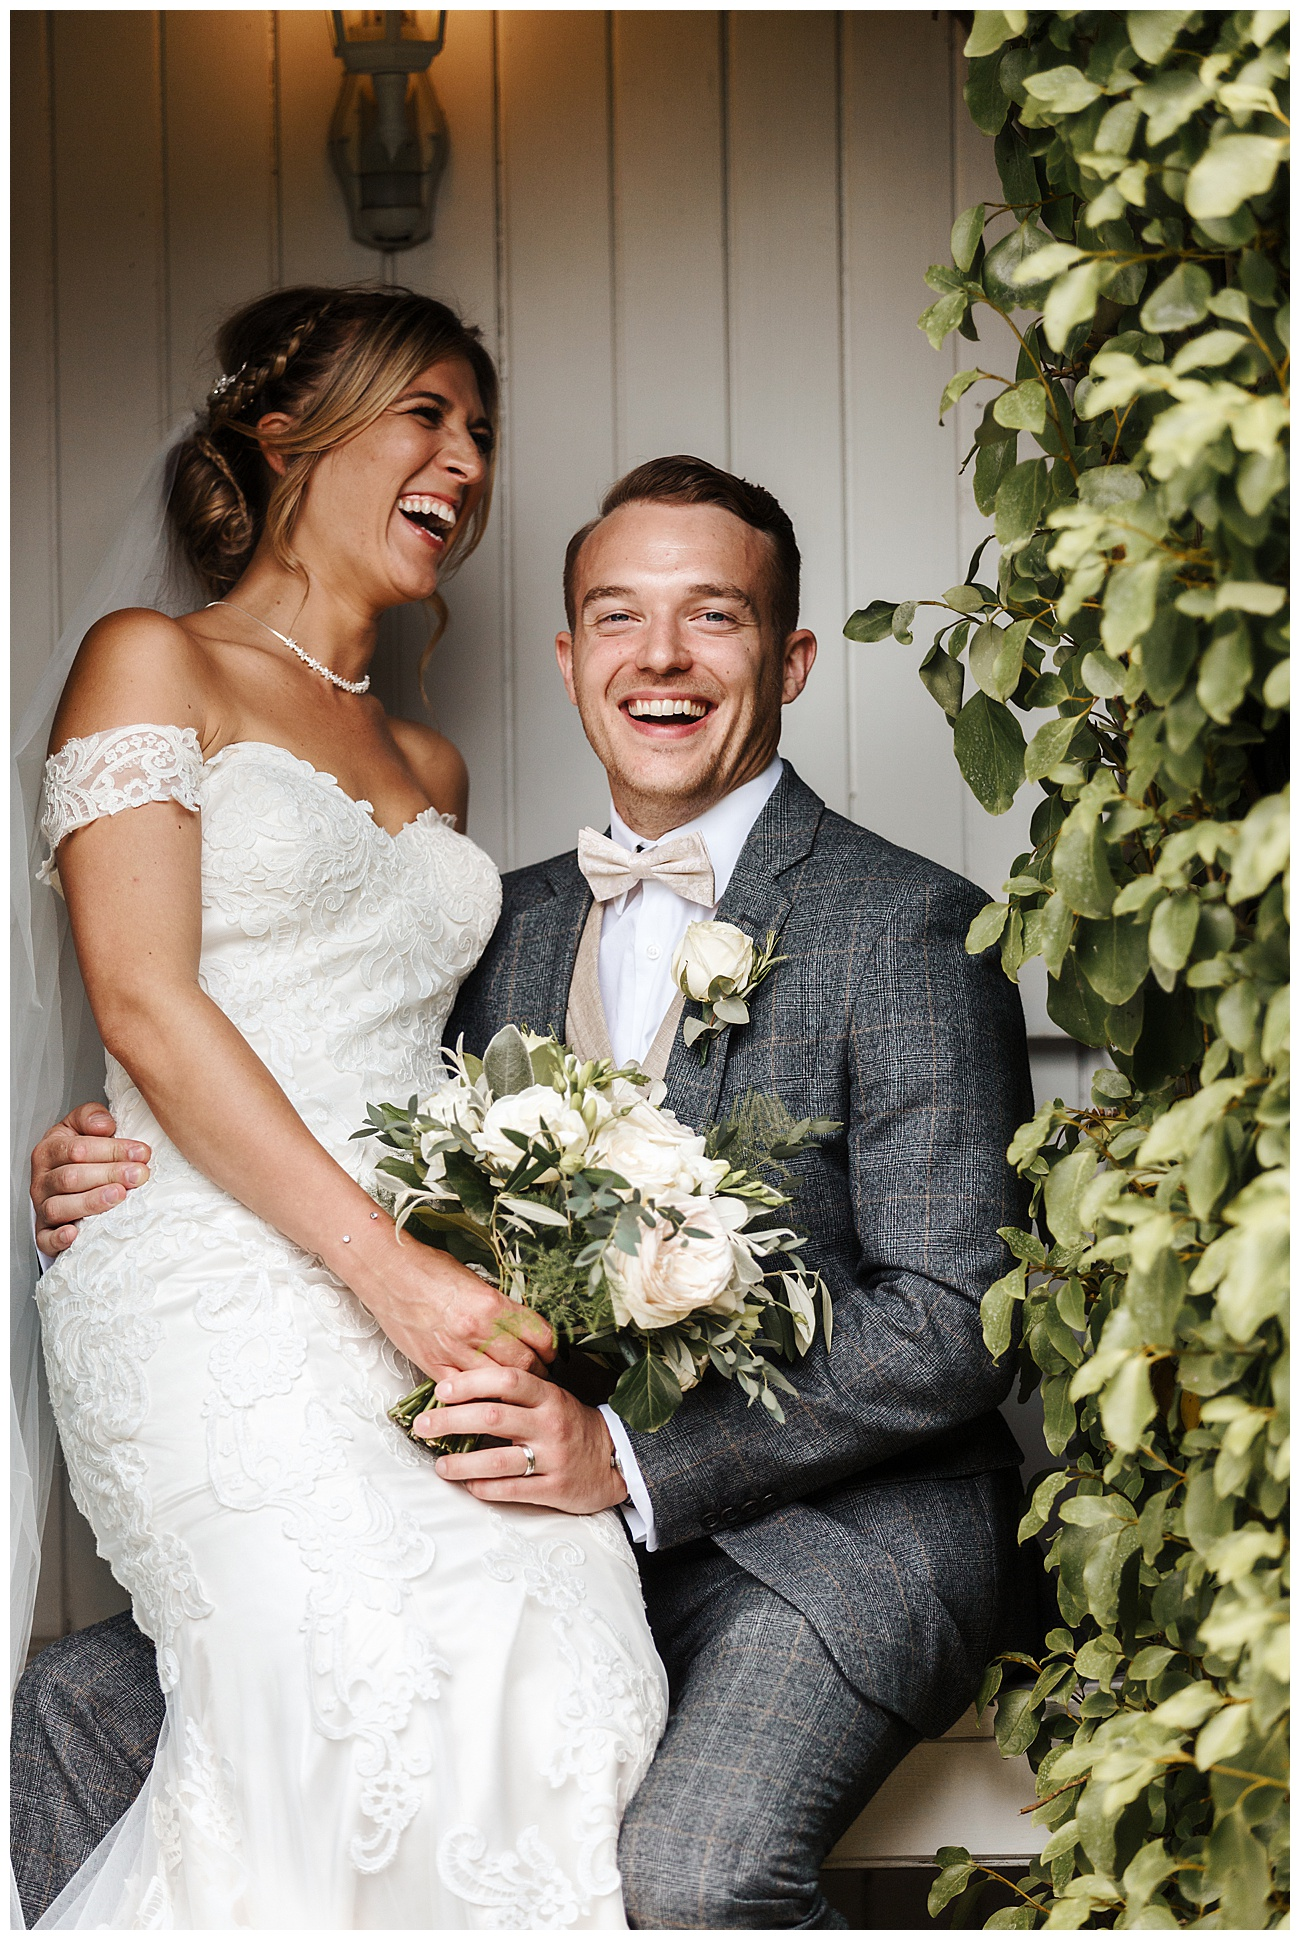 The bride and groom share a joke in the gardens